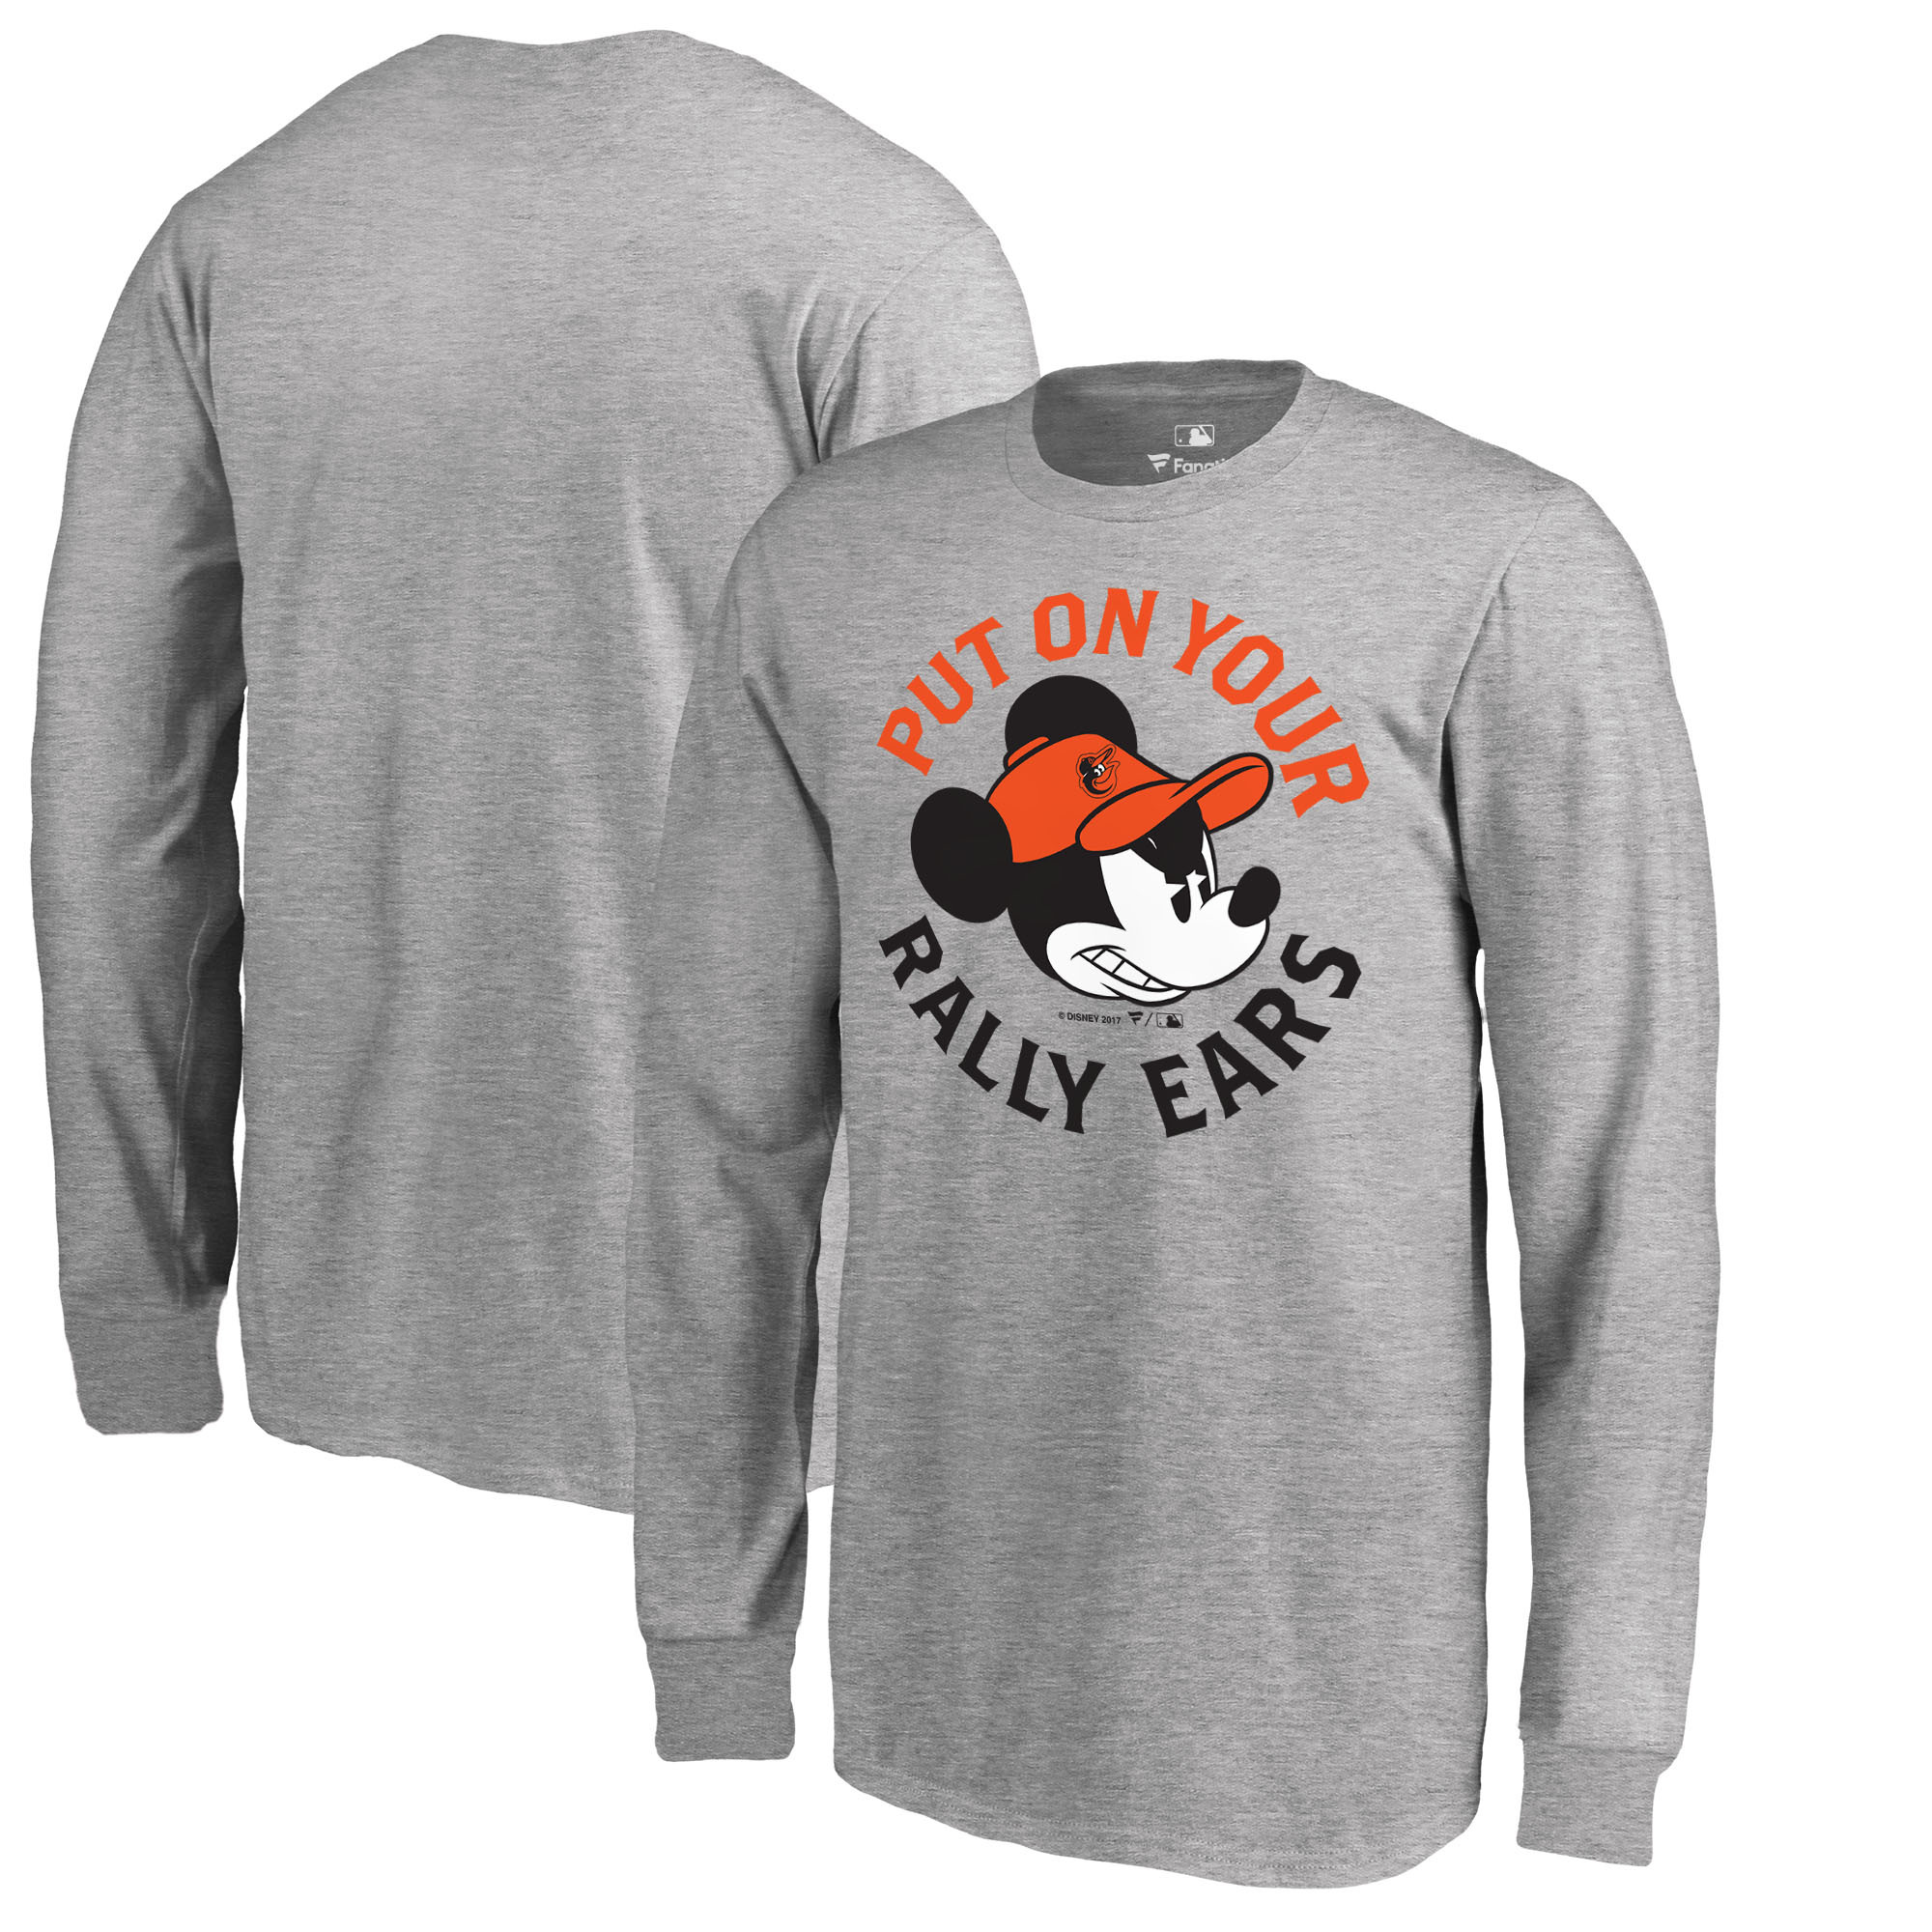 Baltimore Orioles Fanatics Branded Youth Disney Rally Ears Long Sleeve T-Shirt - Heathered Gray